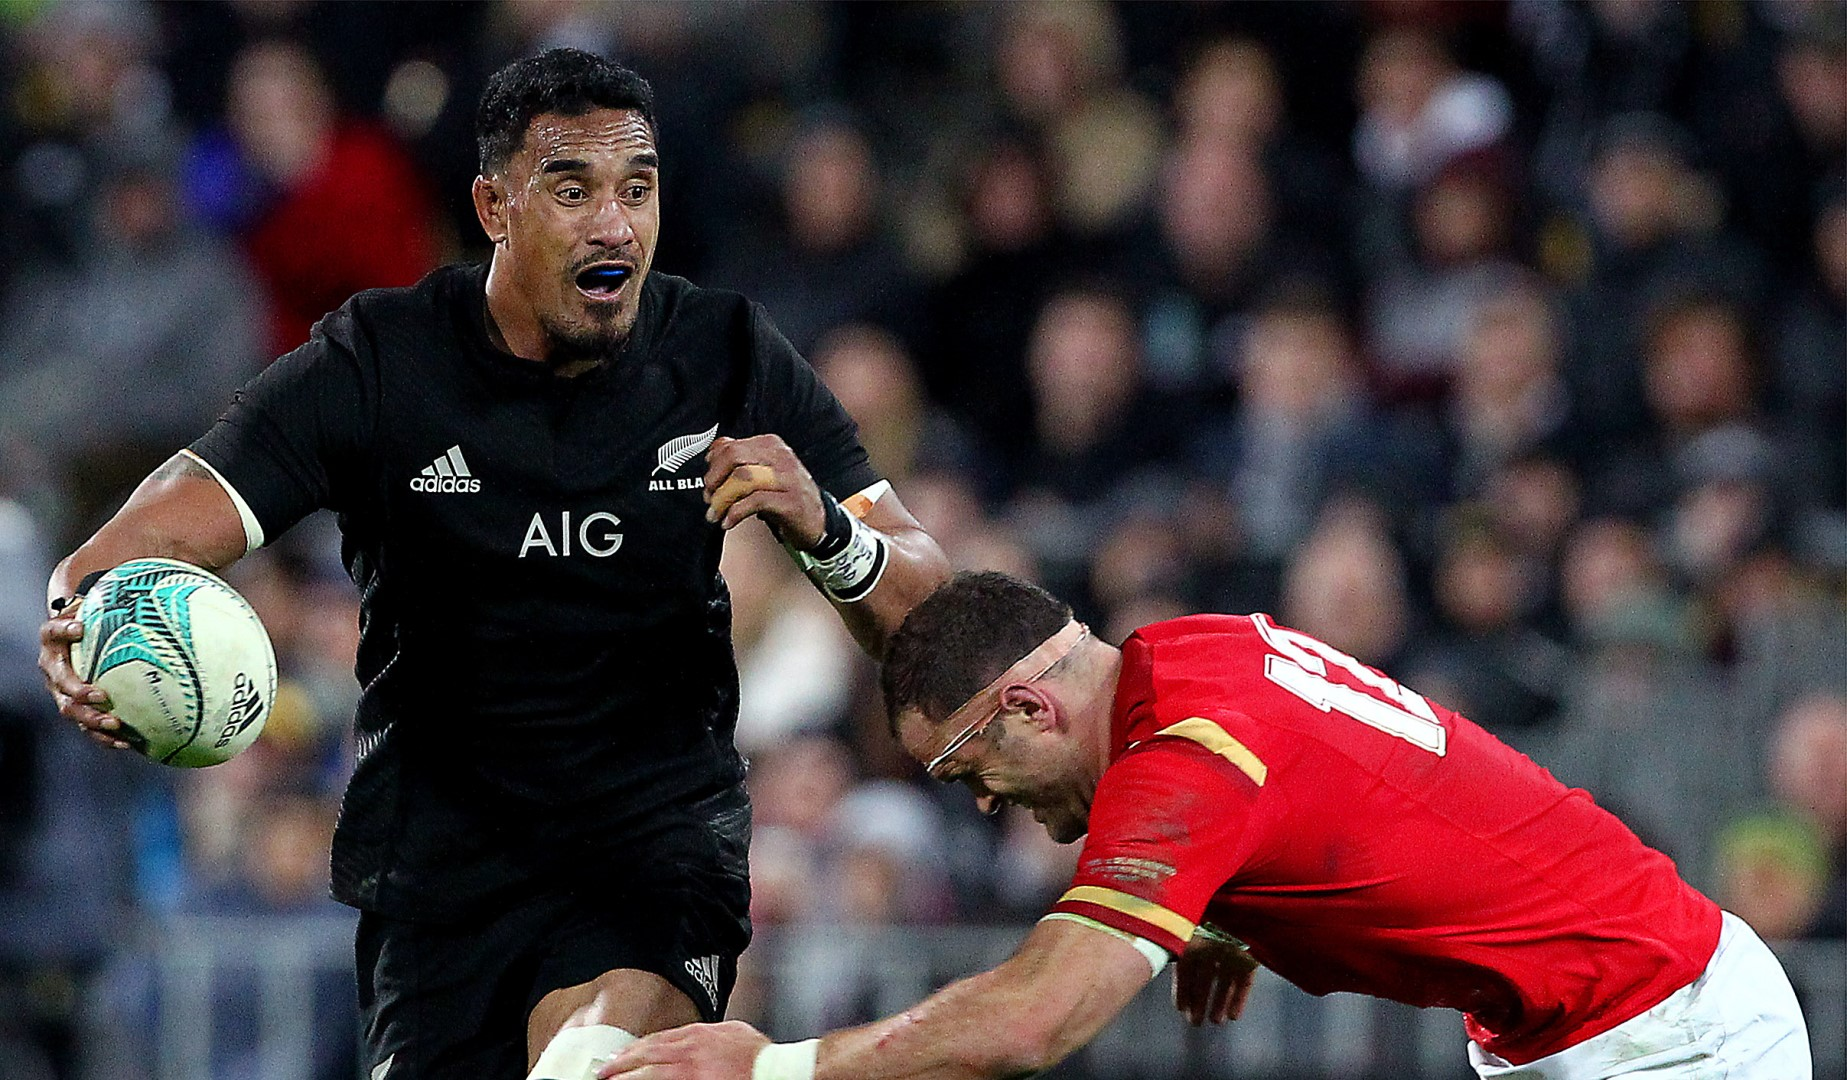 LionsWatch: Kaino shifts to second row for the All Blacks